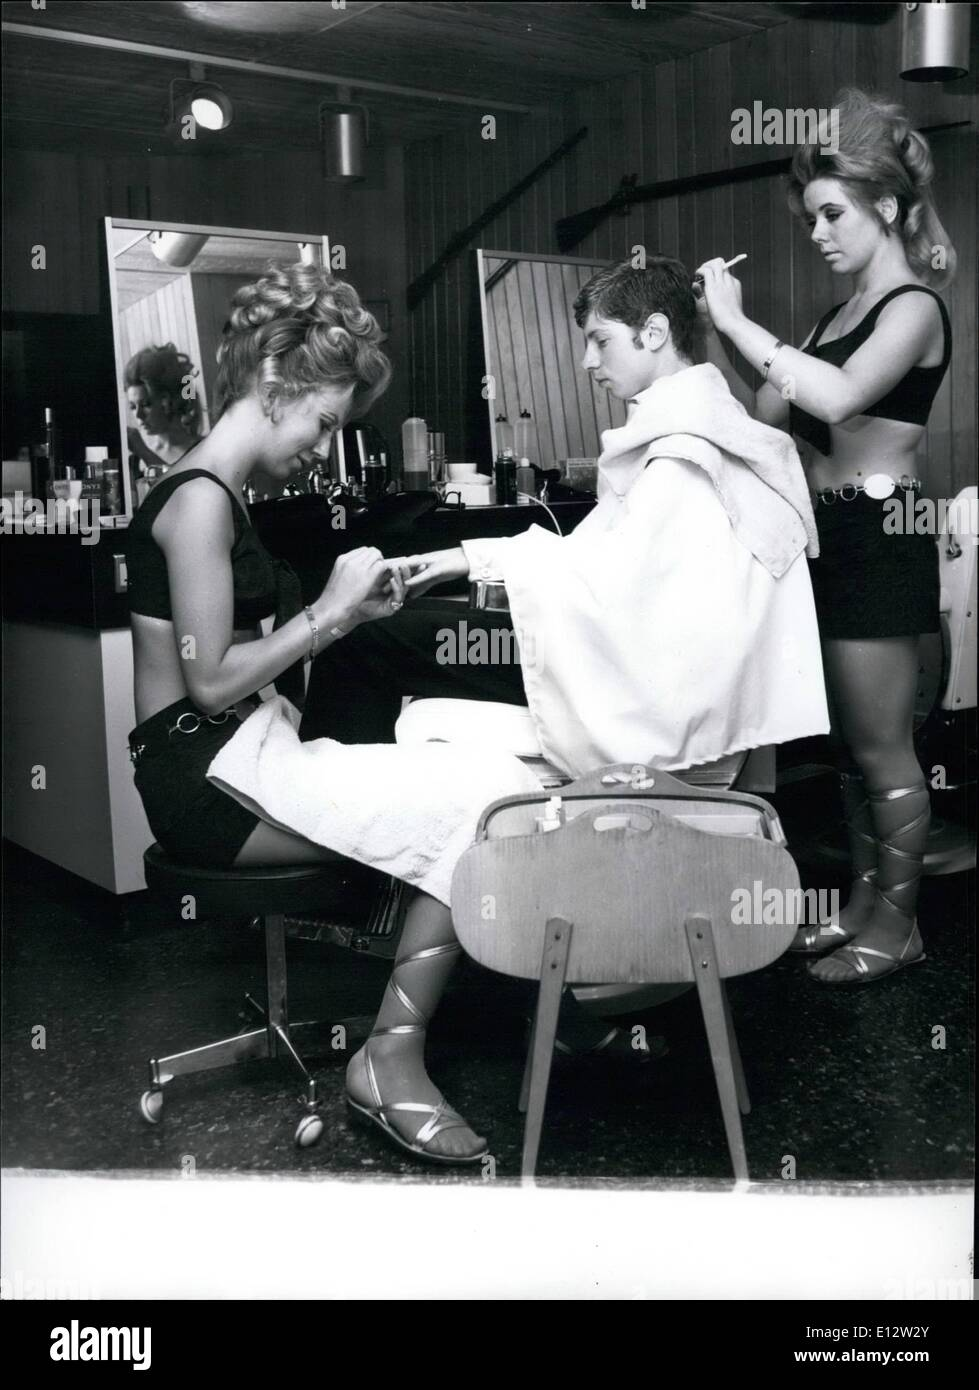 Feb. 25, 2012 - A trim and manicure at Samson and Delilah, London's swinging hairdressing establishment for men certainly is a pleasure. - Stock Image